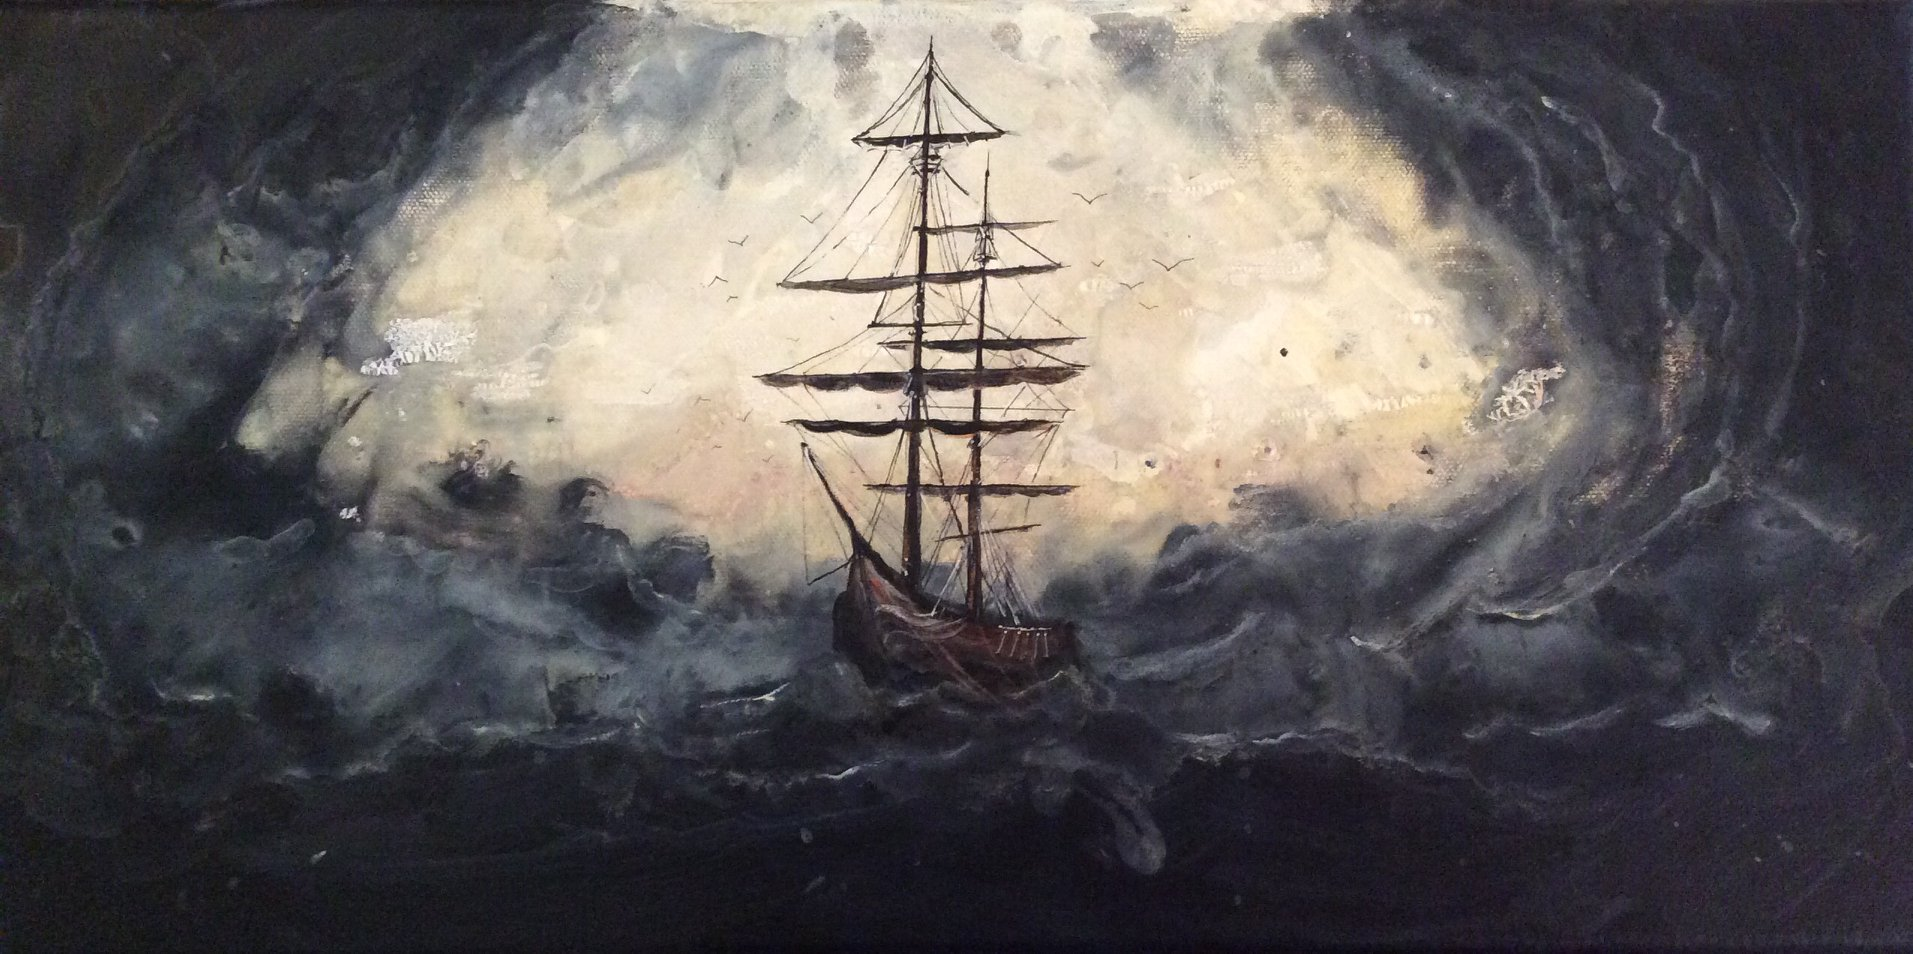 'The Storm with No Name' - J Edward Neill - 2020